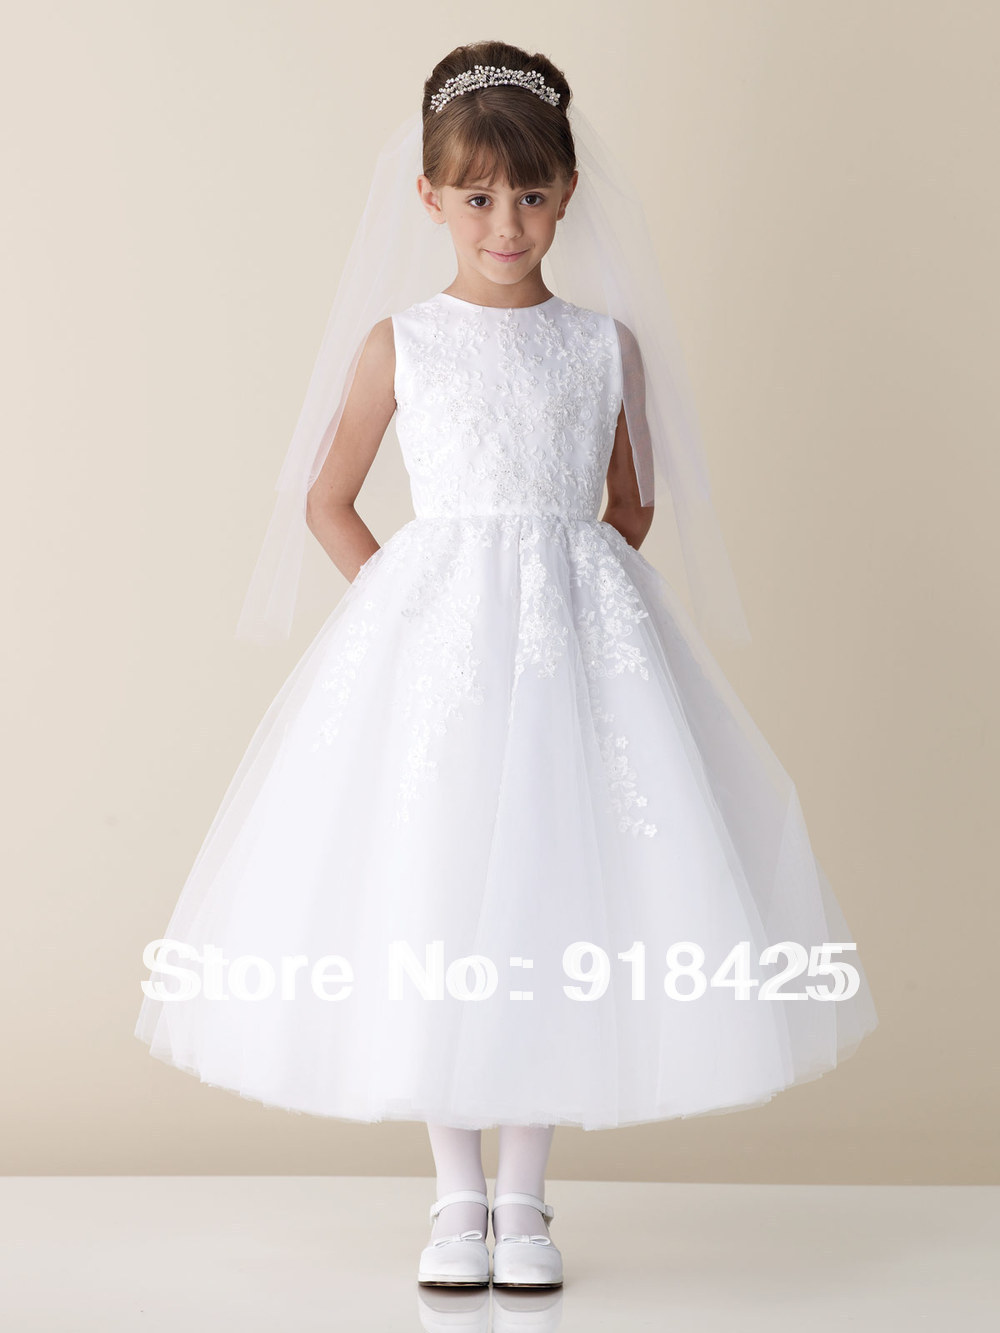 Free Shipping Tea Length Appliques Tulle Lace White Flower Girls Wedding Dress with Veil FN118(China (Mainland))